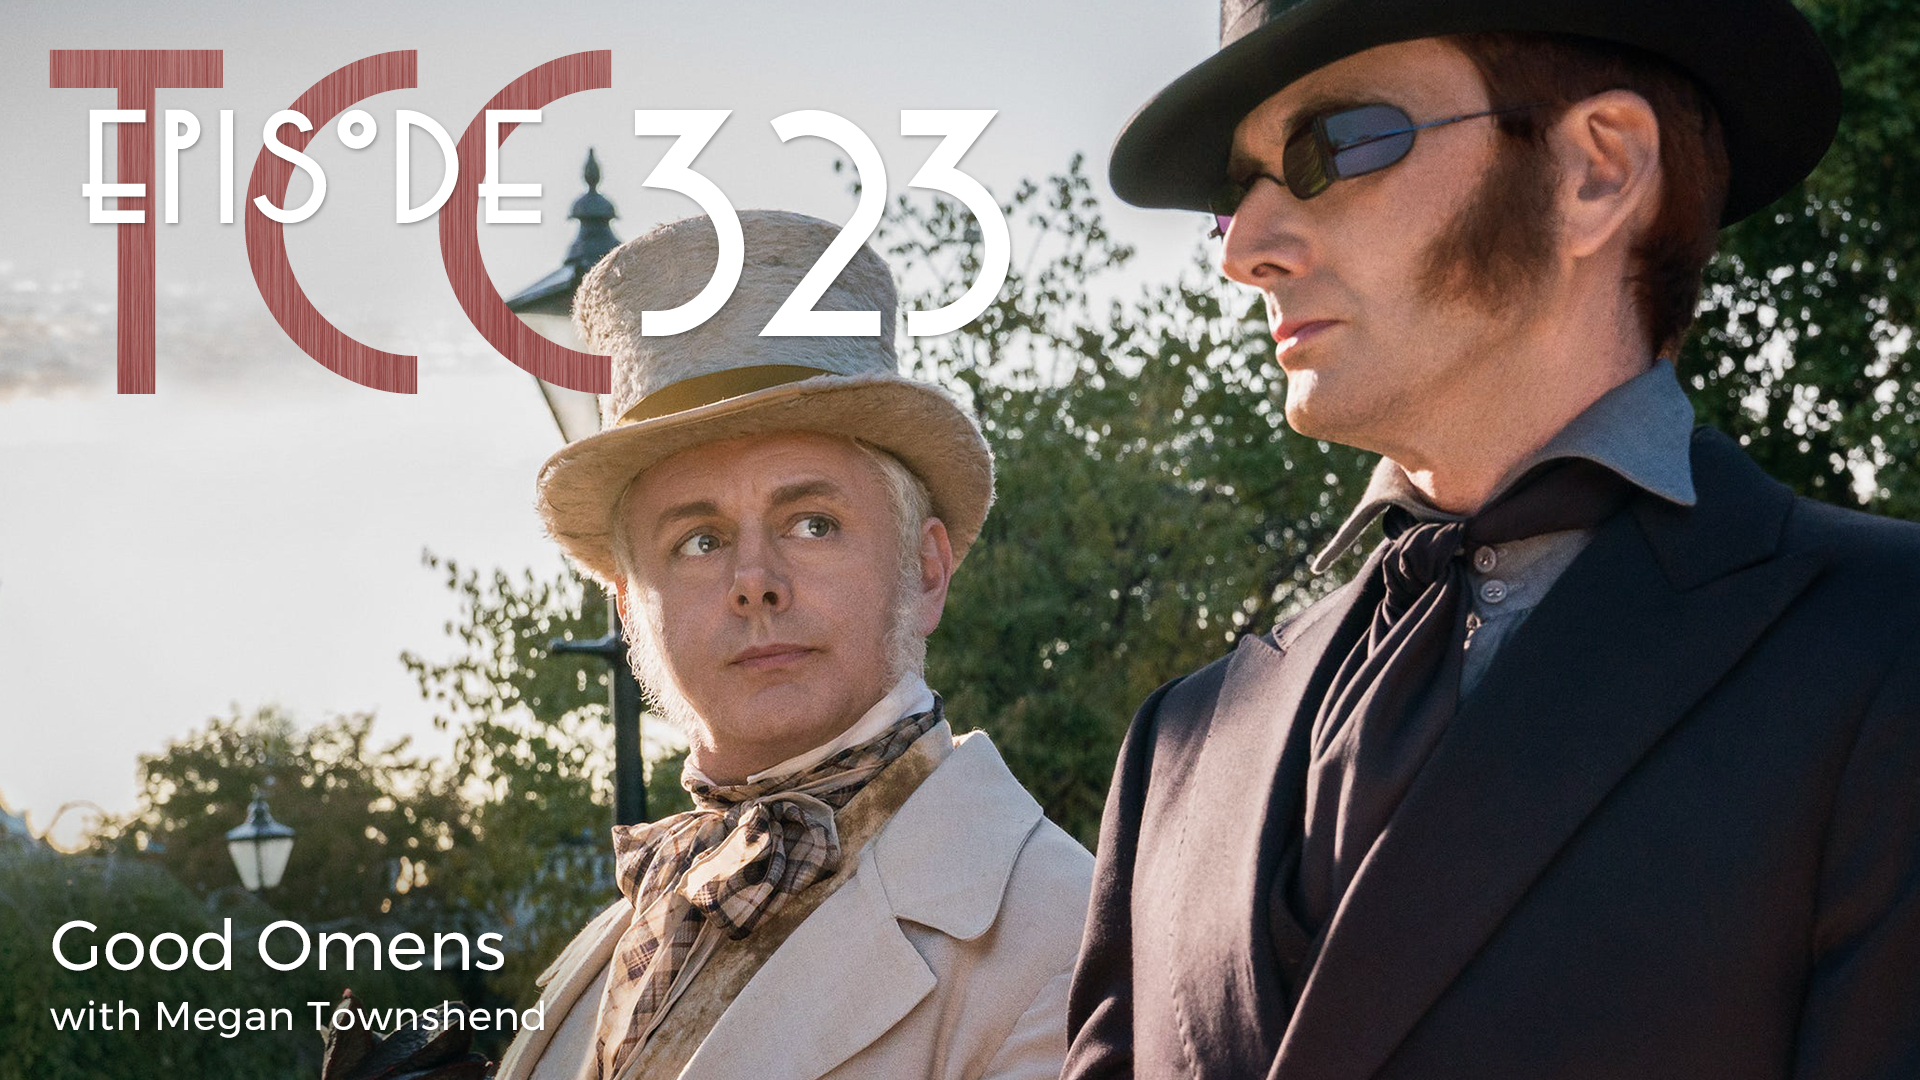 The Citadel Cafe 323: Good Omens